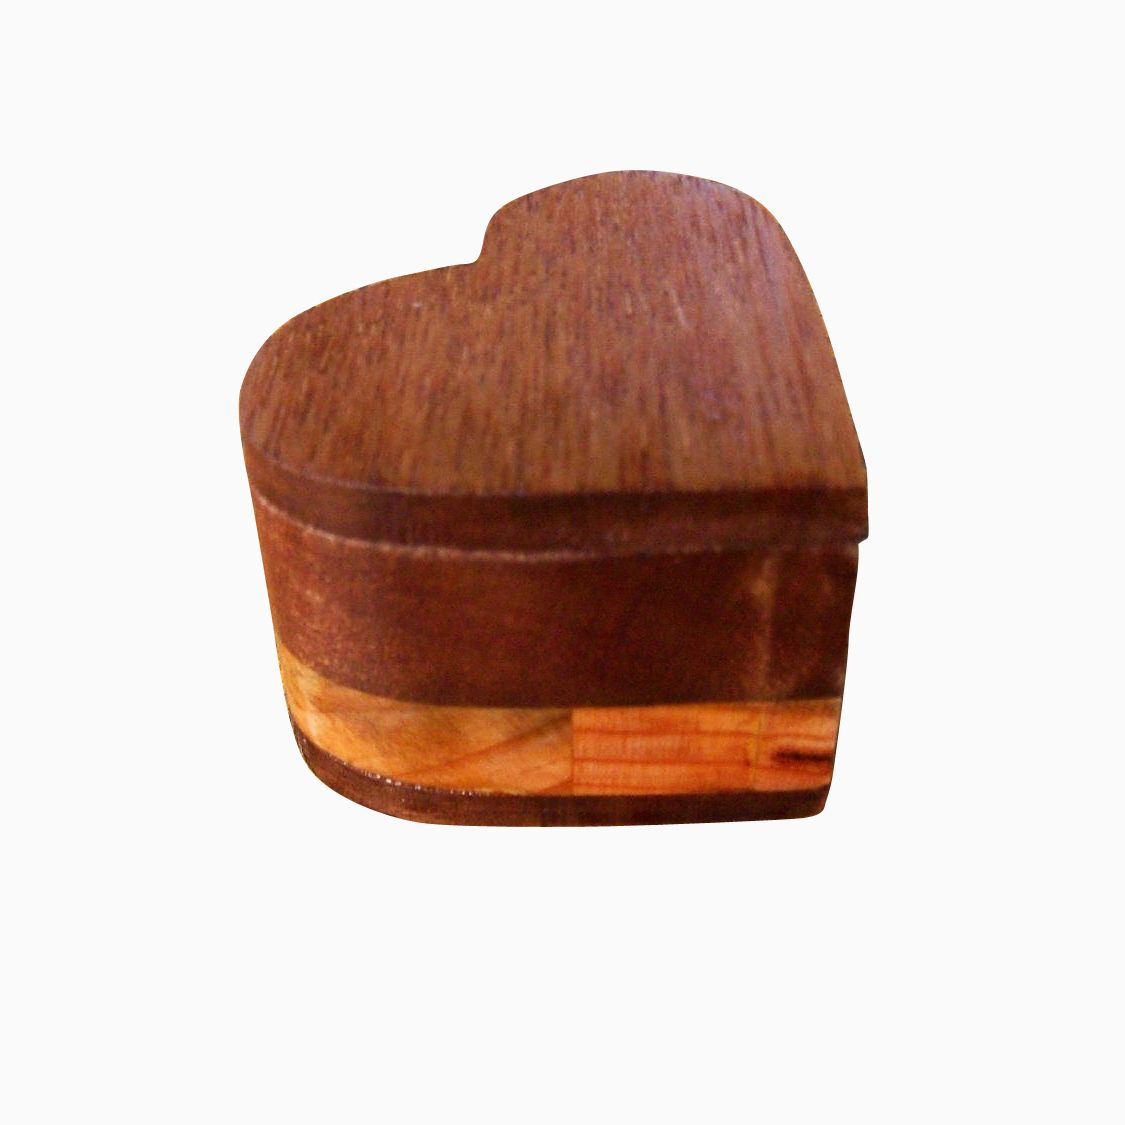 buy a custom heart shaped wooden ring box made to order